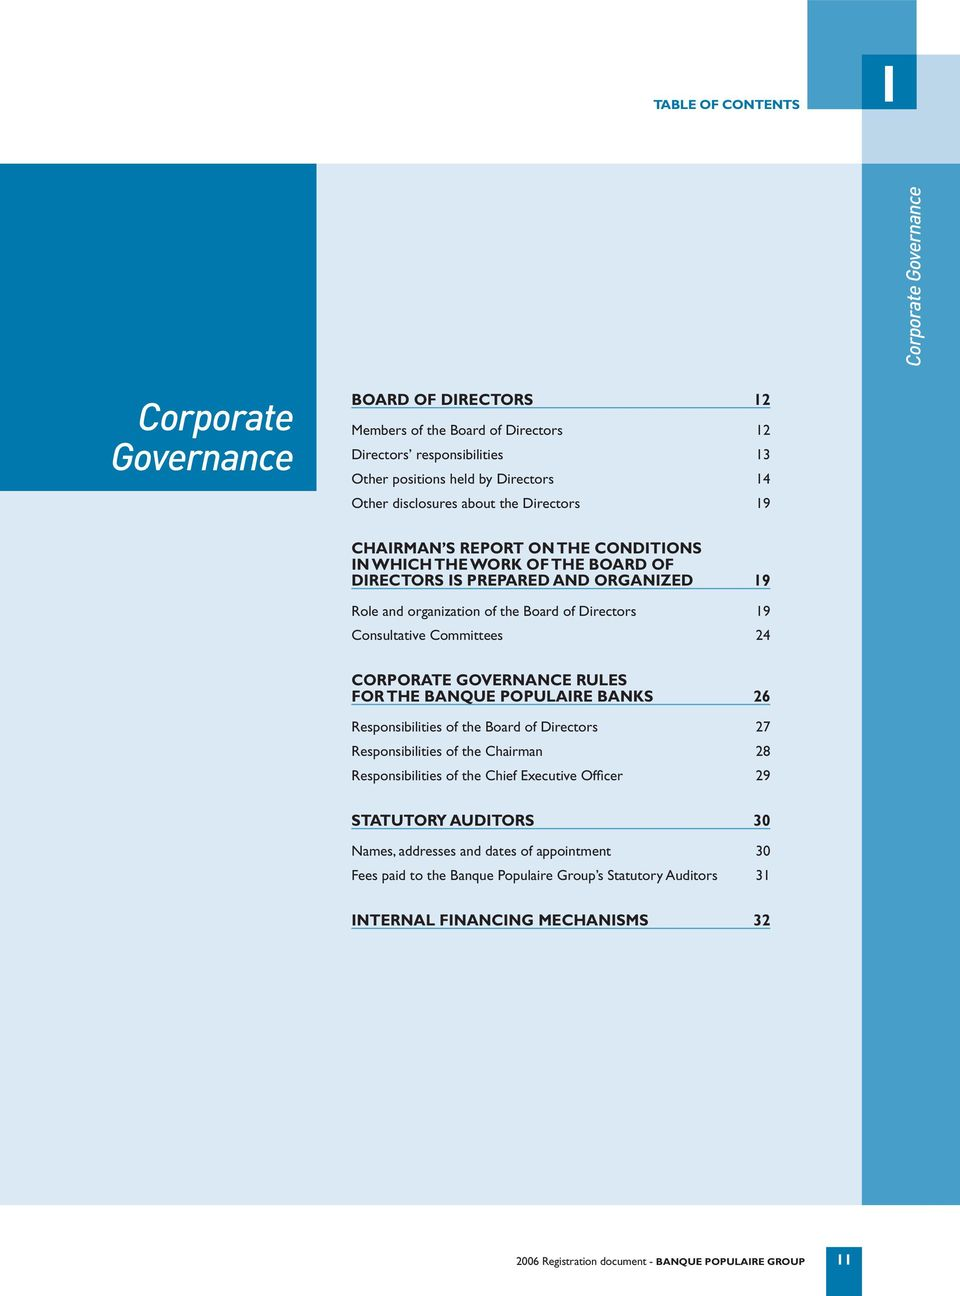 Consultative Committees 24 CORPORATE GOVERNANCE RULES FOR THE BANQUE POPULAIRE BANKS 26 Responsibilities of the Board of Directors 27 Responsibilities of the Chairman 28 Responsibilities of the Chief